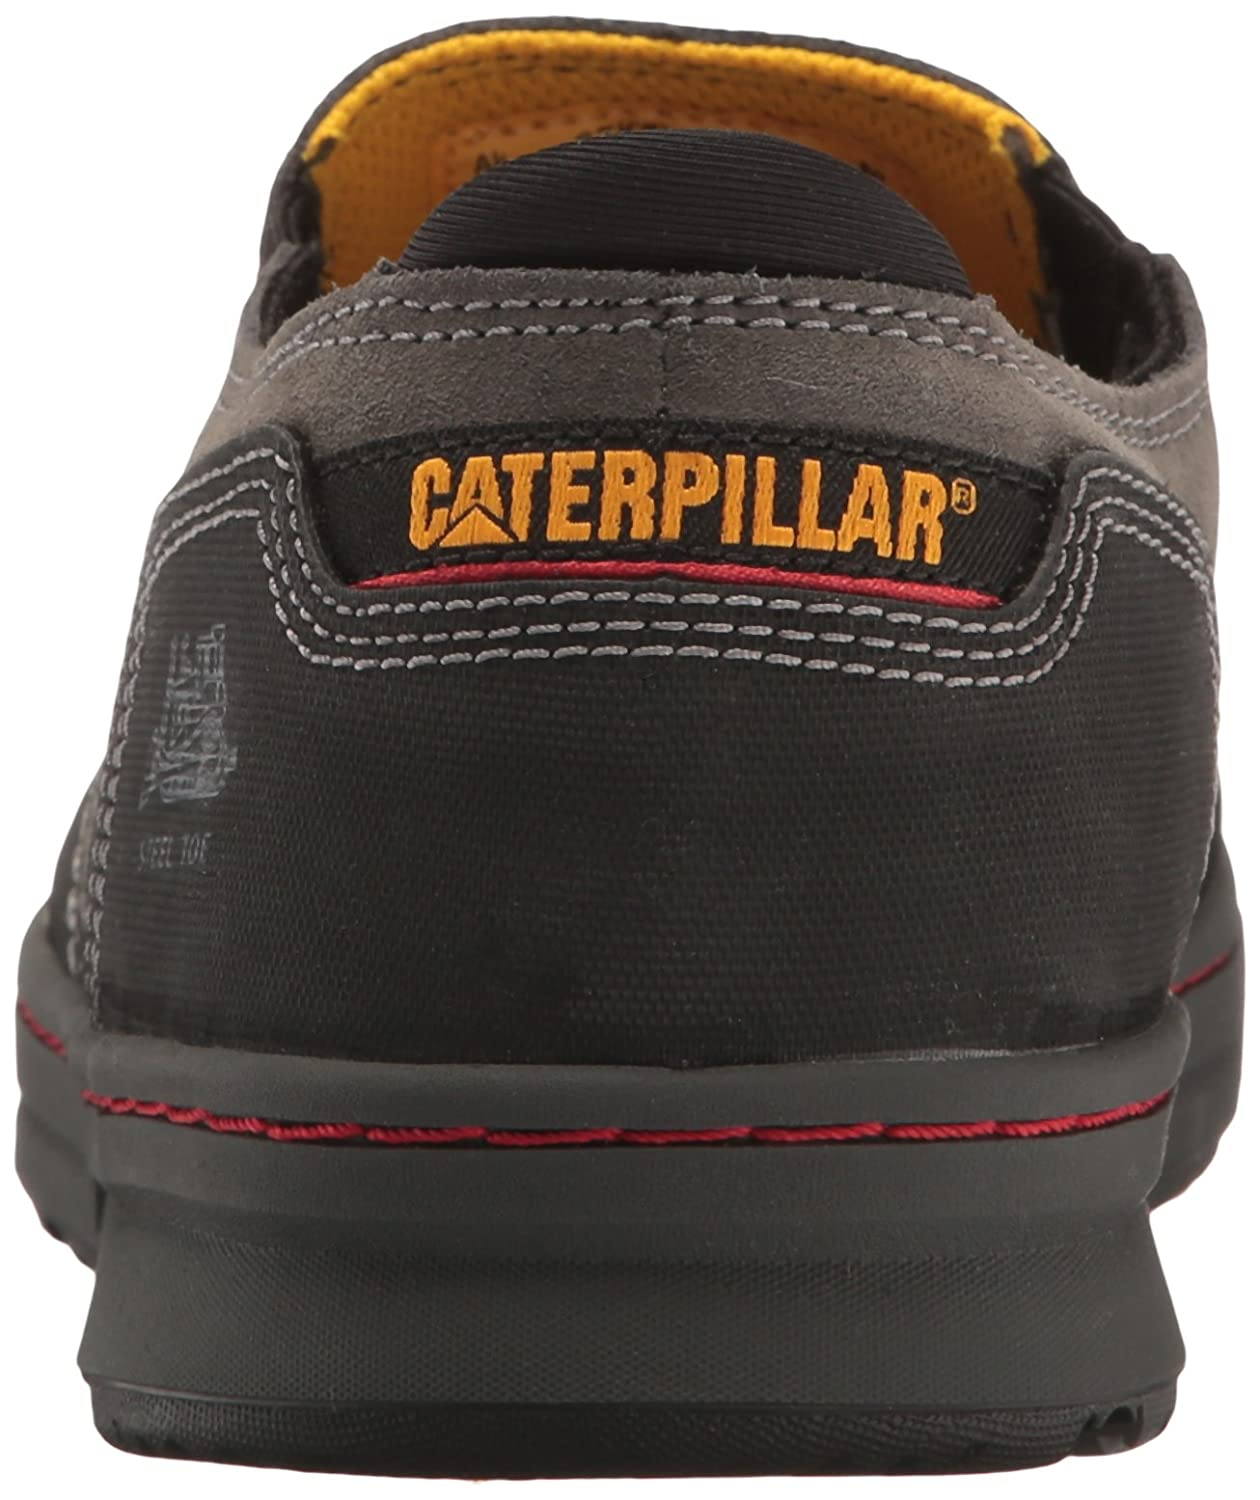 caterpillar shoes erbil tpcg water